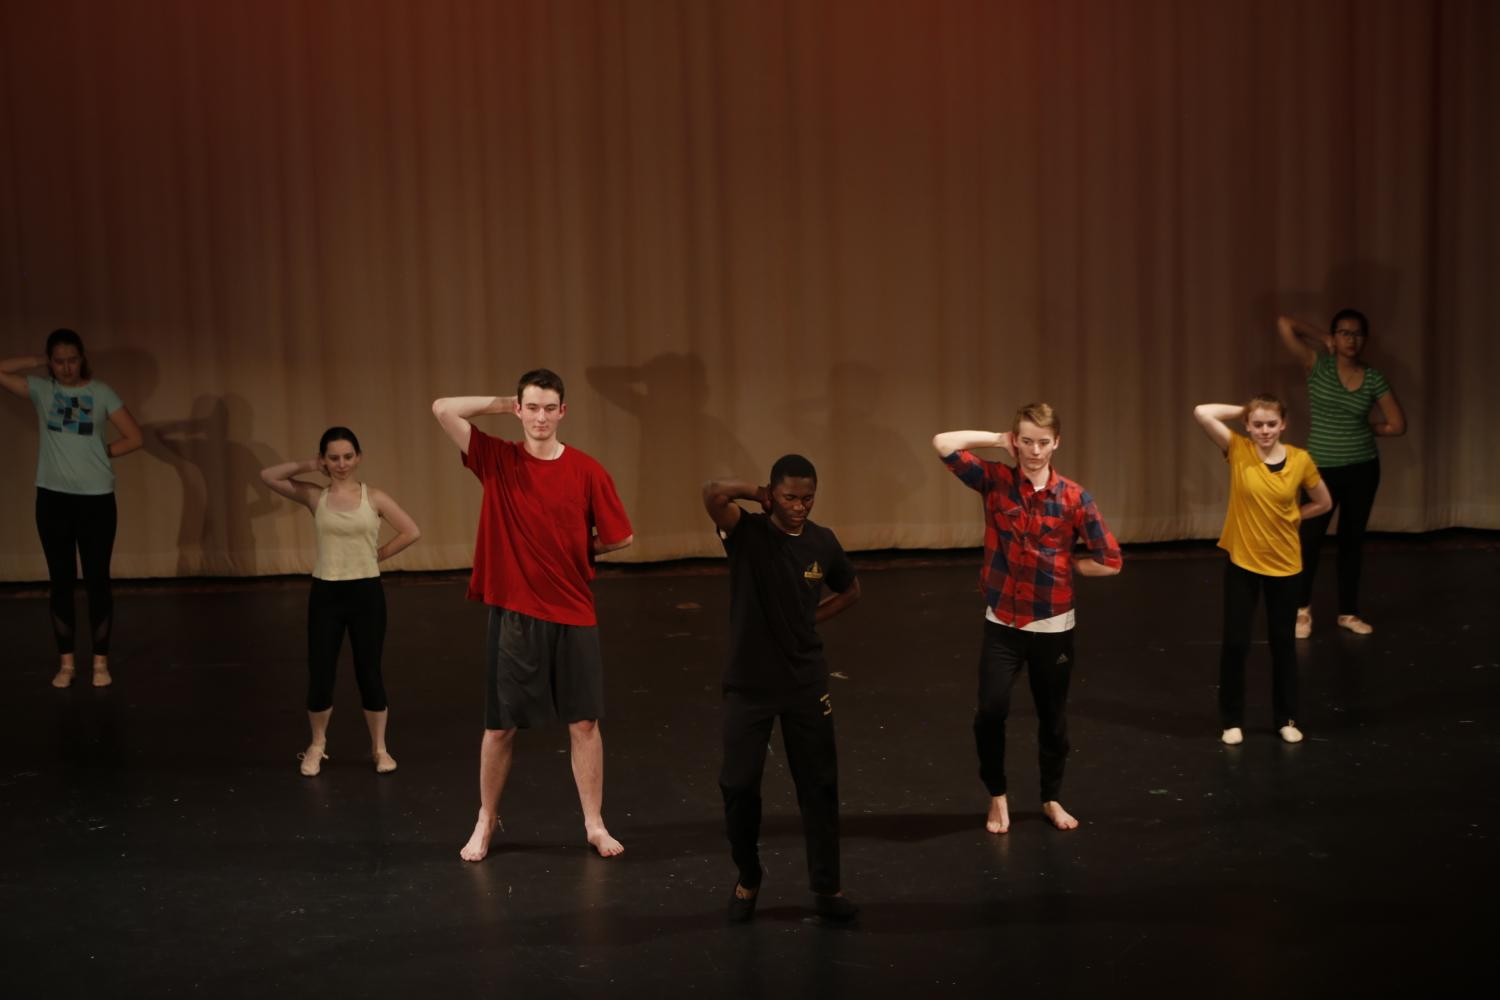 Goodwill Ofori-Atuahene (12) leads Valerija Barkanova (12), McKenna Reid (11), Thomas Hudson (12), Caleb Hall (12), Abi Bebee (10), and Hanny Chairunnisa (12) in a Ghanian style dance choreographed by Ofori-Atuahene, an exchange student from Ghana. He took initiative and asked Nicole Berry, the dance teacher, if he could do a dance for the concert. His dance was performed to